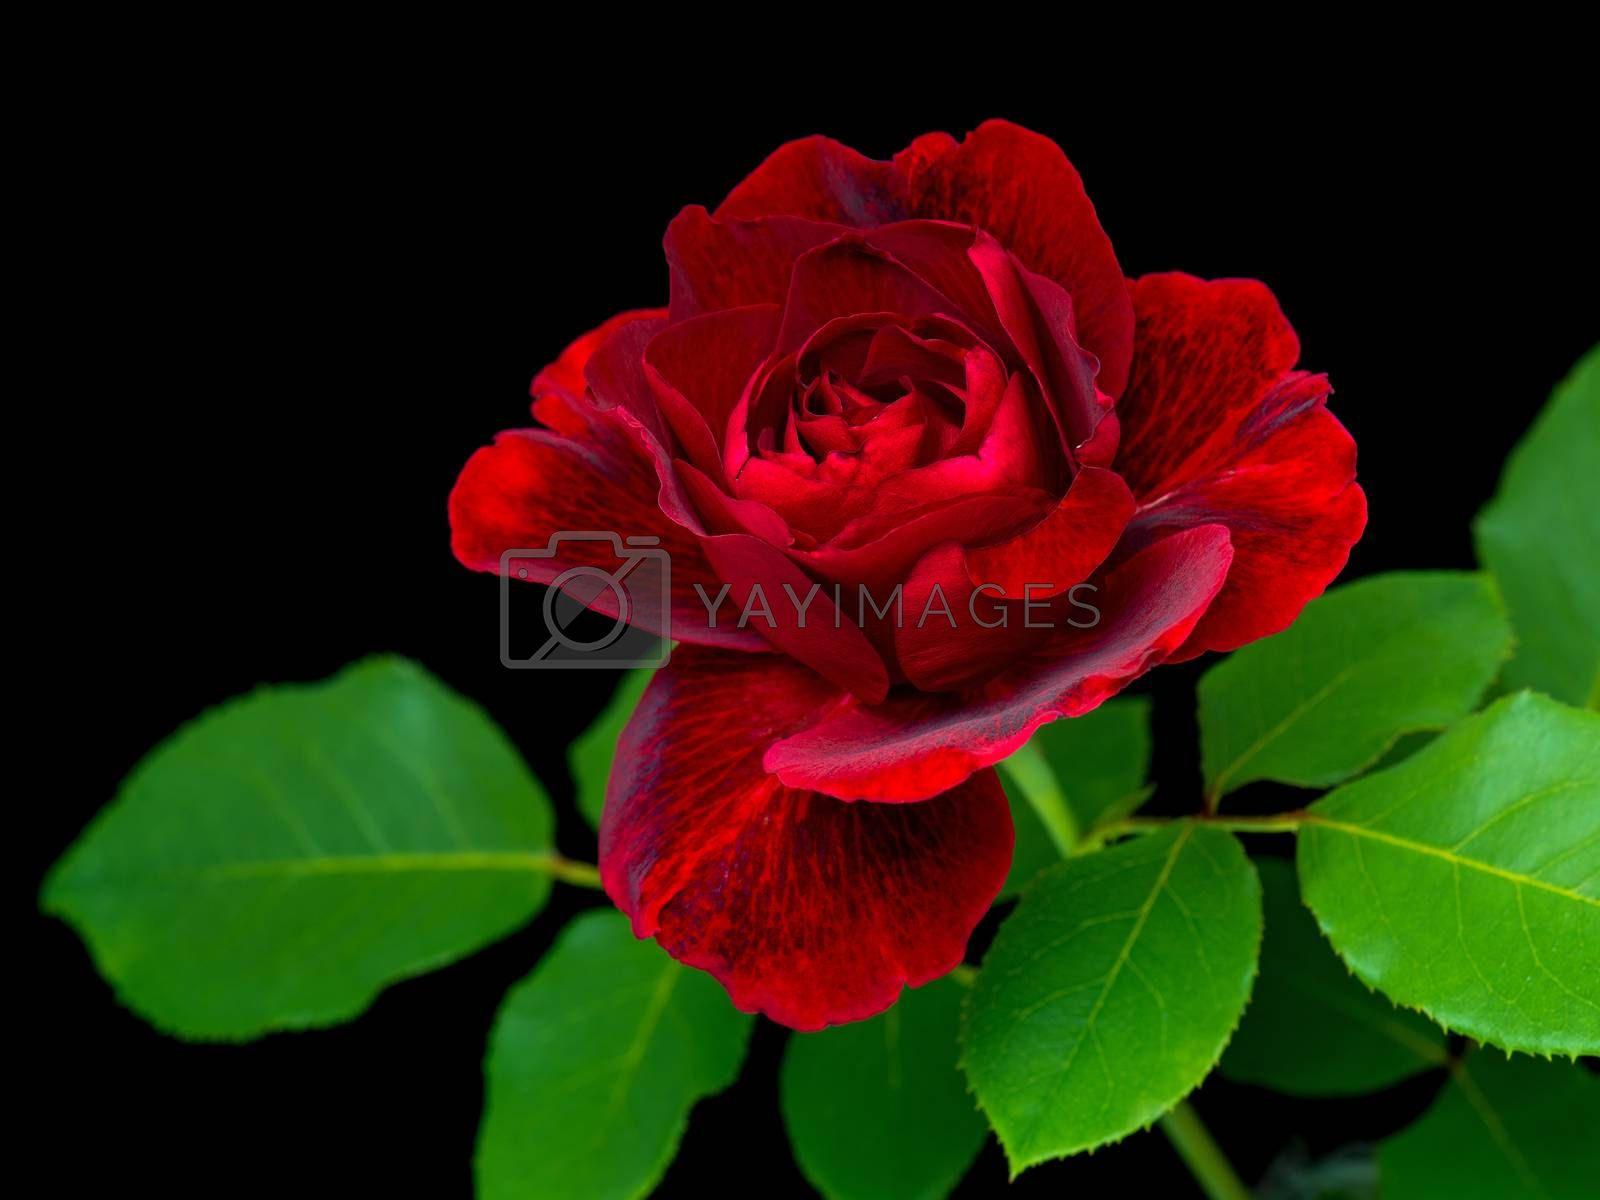 Single beautiful red rose with green leaves on a black background - close up studio photo.